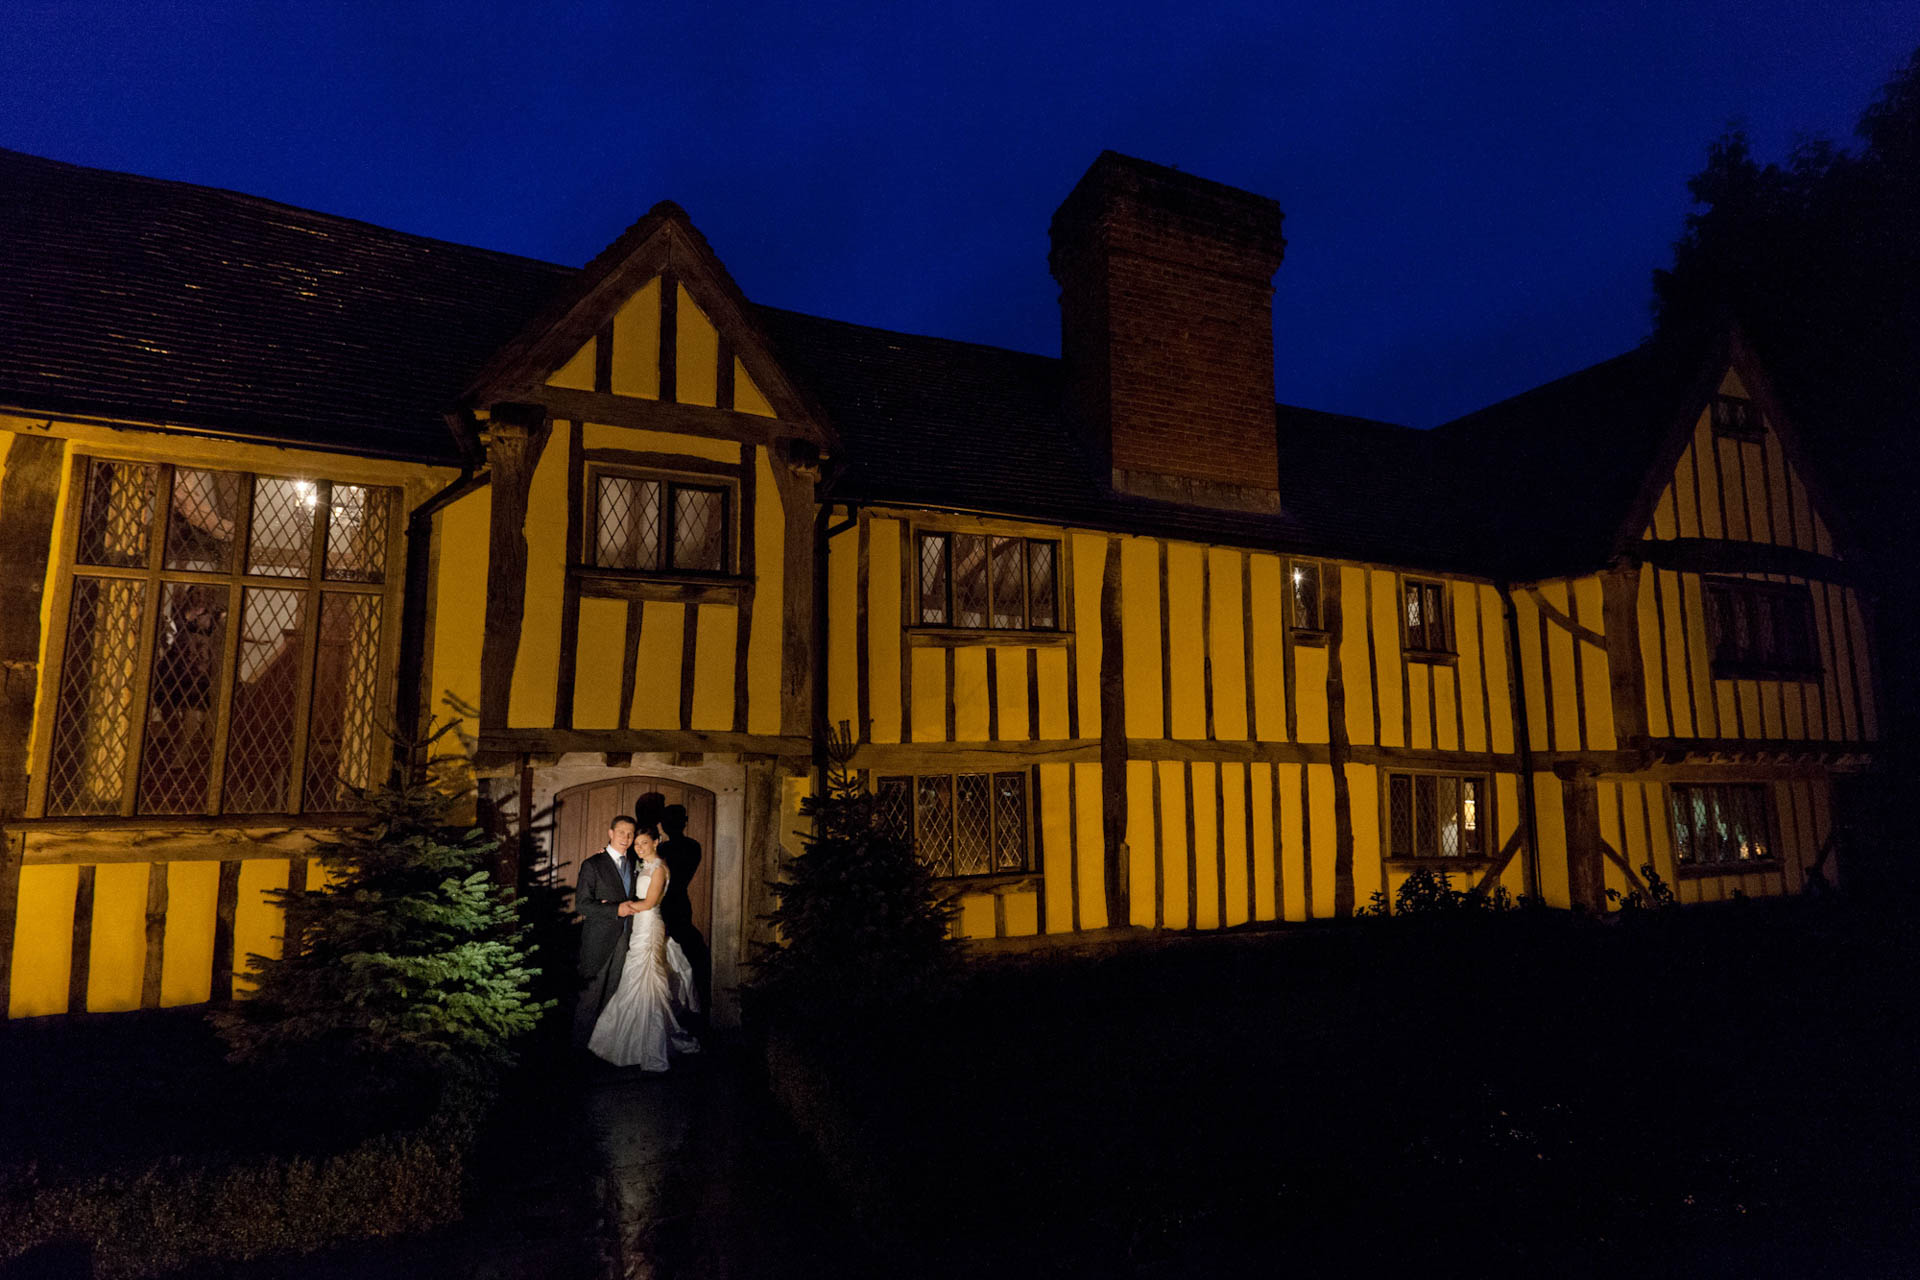 Cain Manor wedding